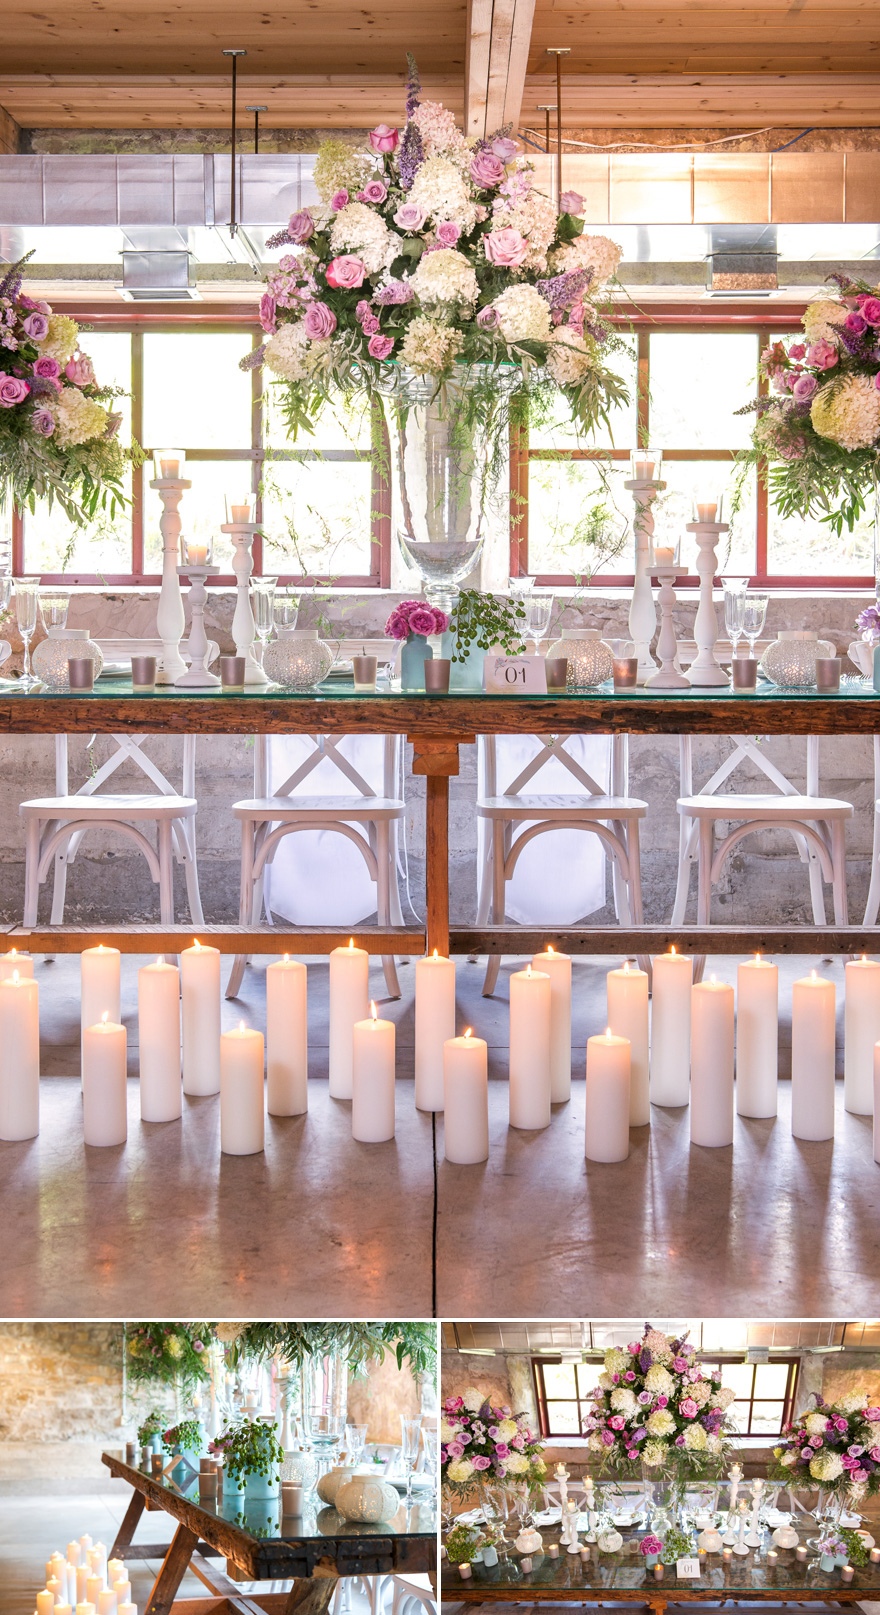 Bohemian Wedding Decor with Glass Vases and Big Floral Arrangements | Confetti.co.uk